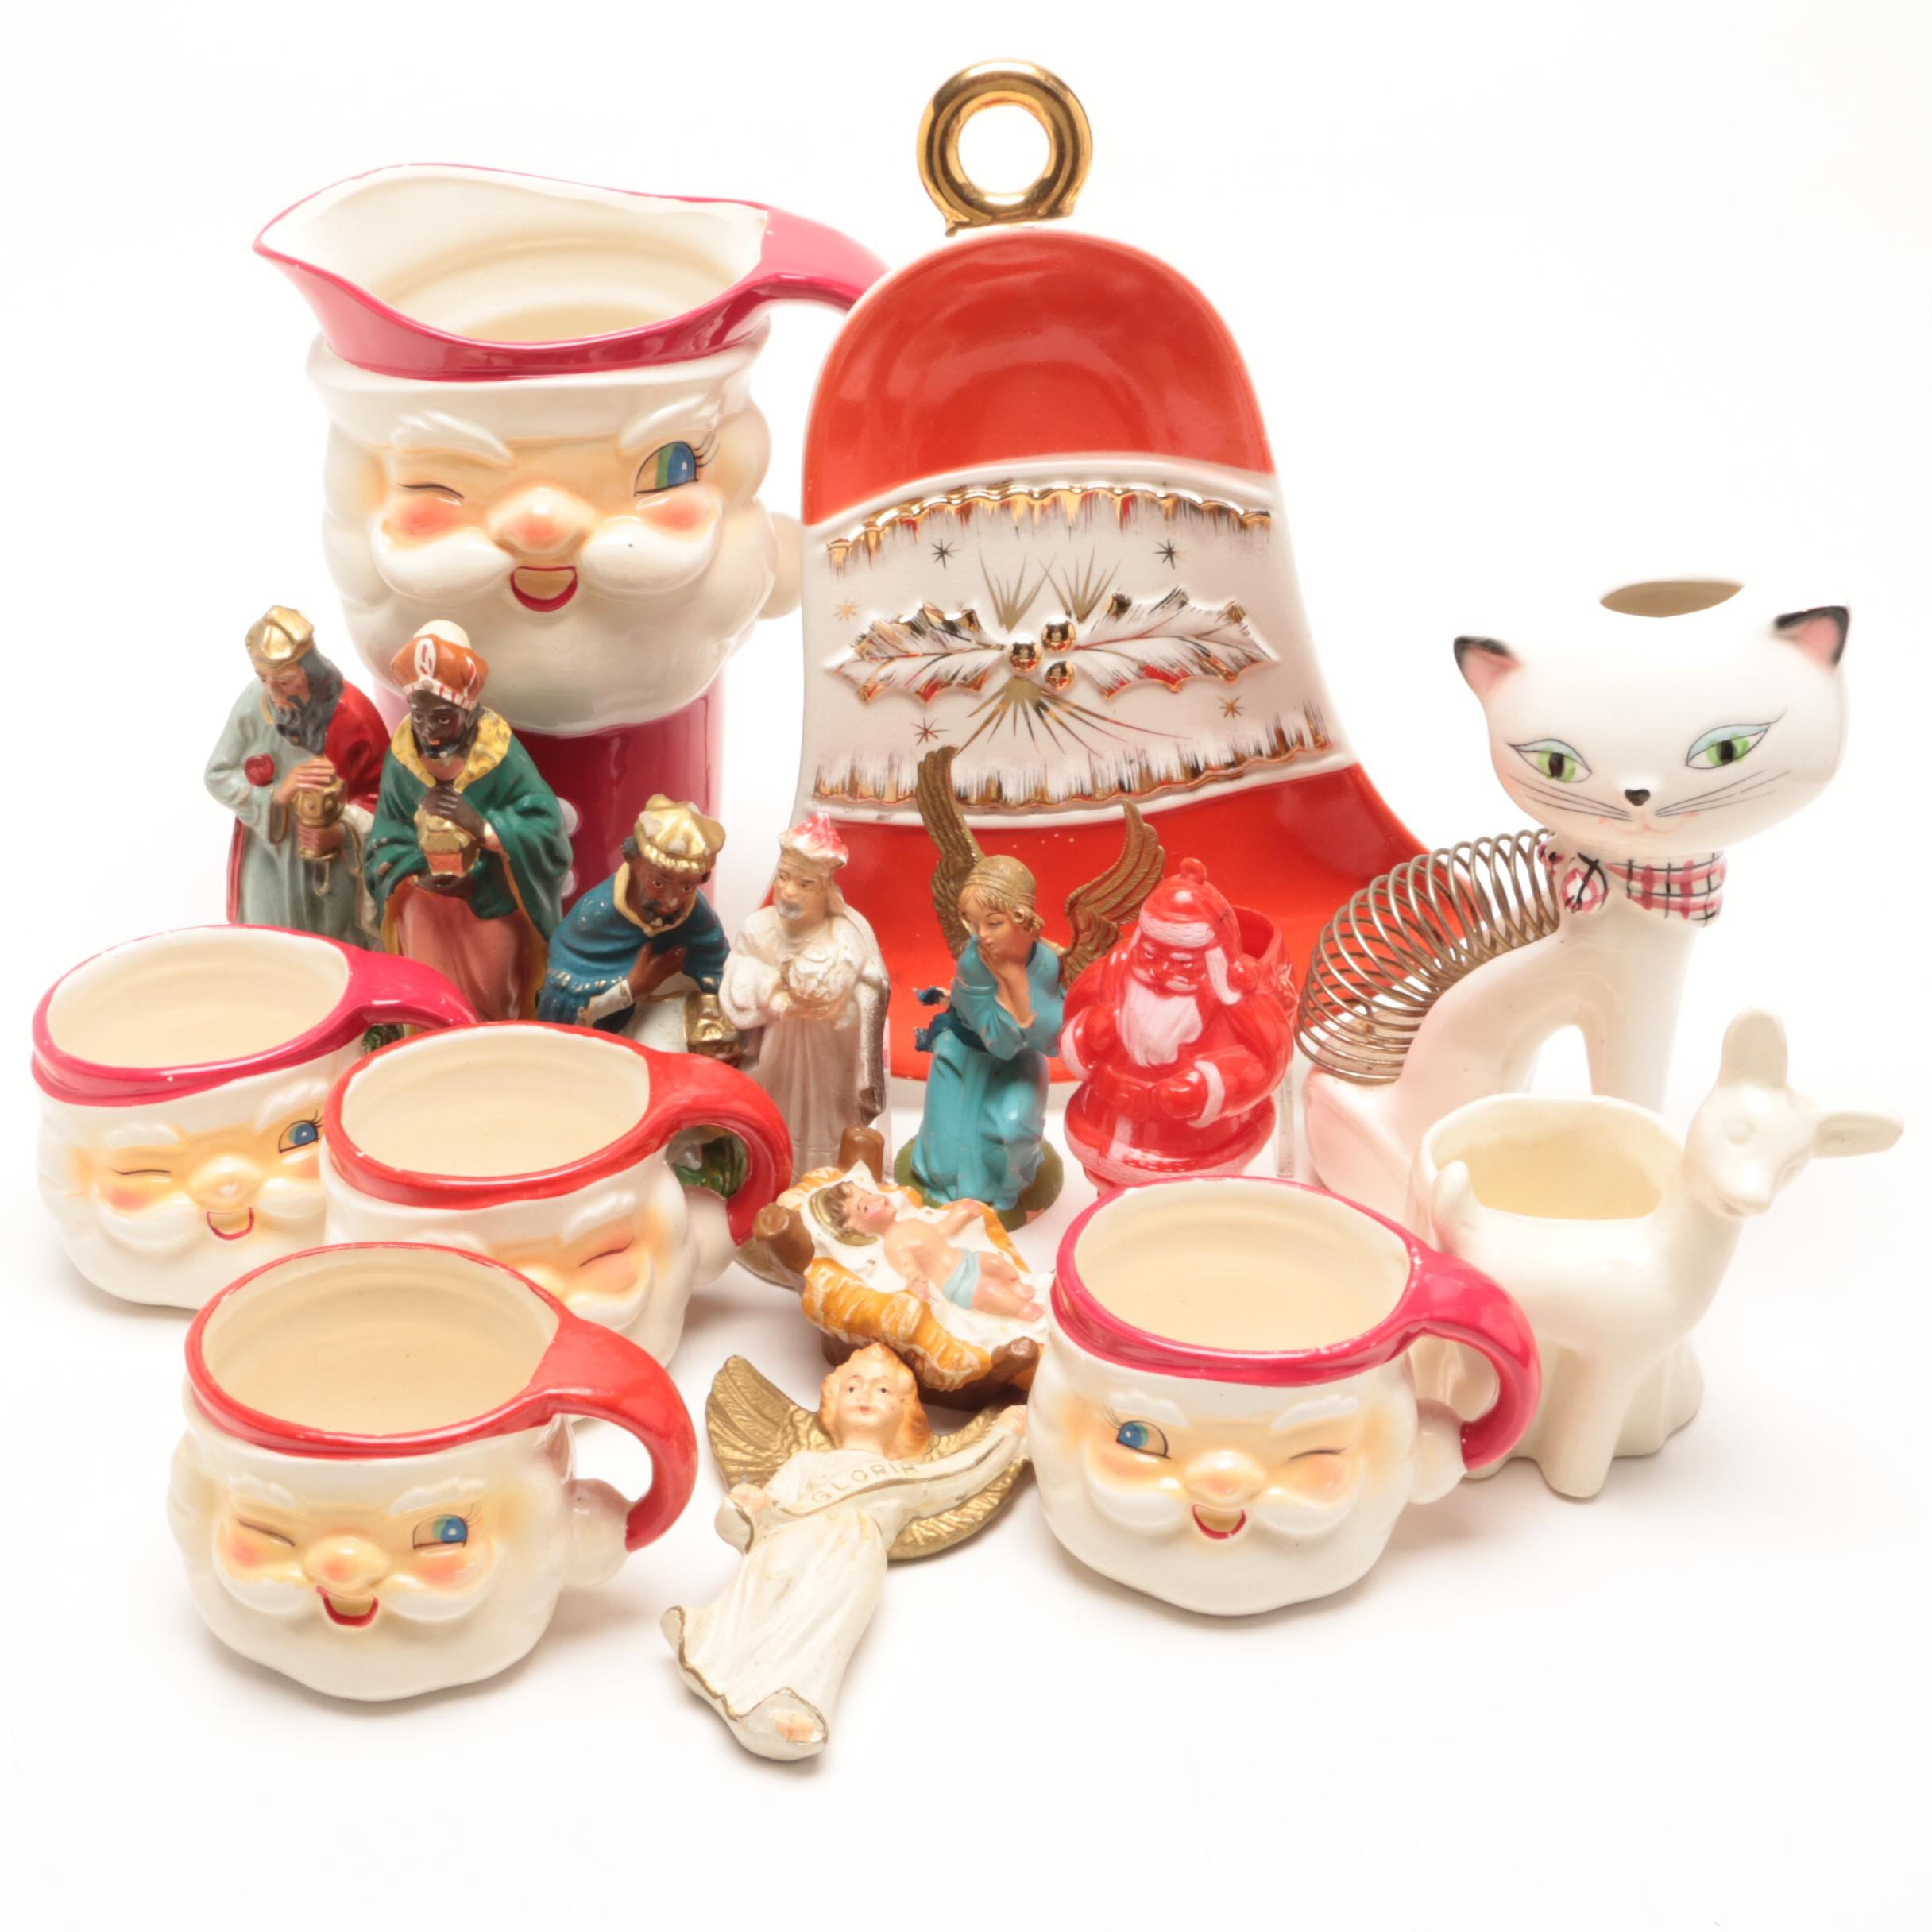 Group of Christmas Figurines and Servingware